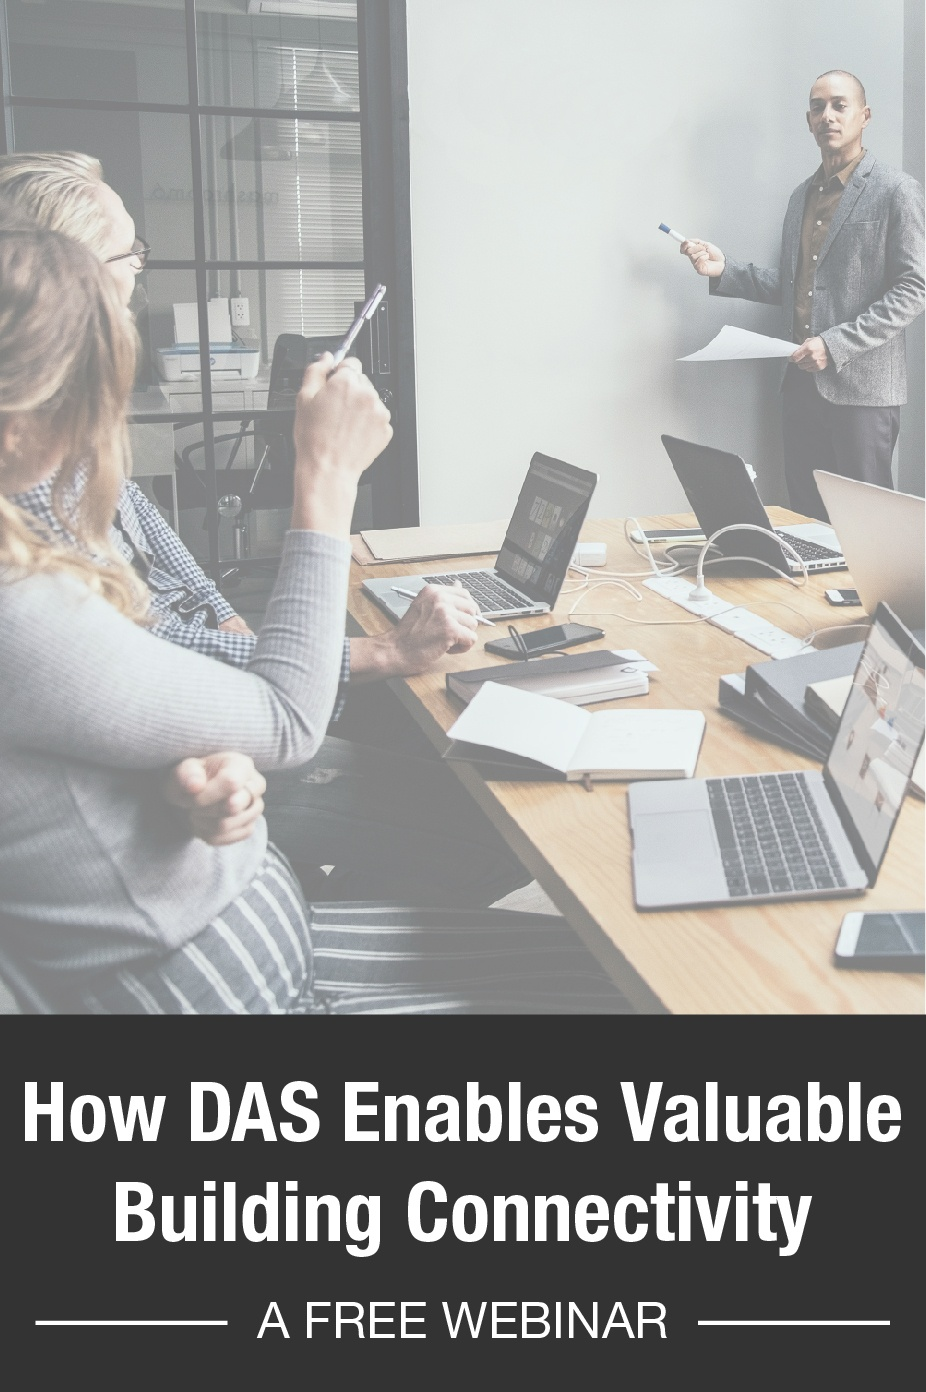 How DAS Enables Valuable Building Connectivity